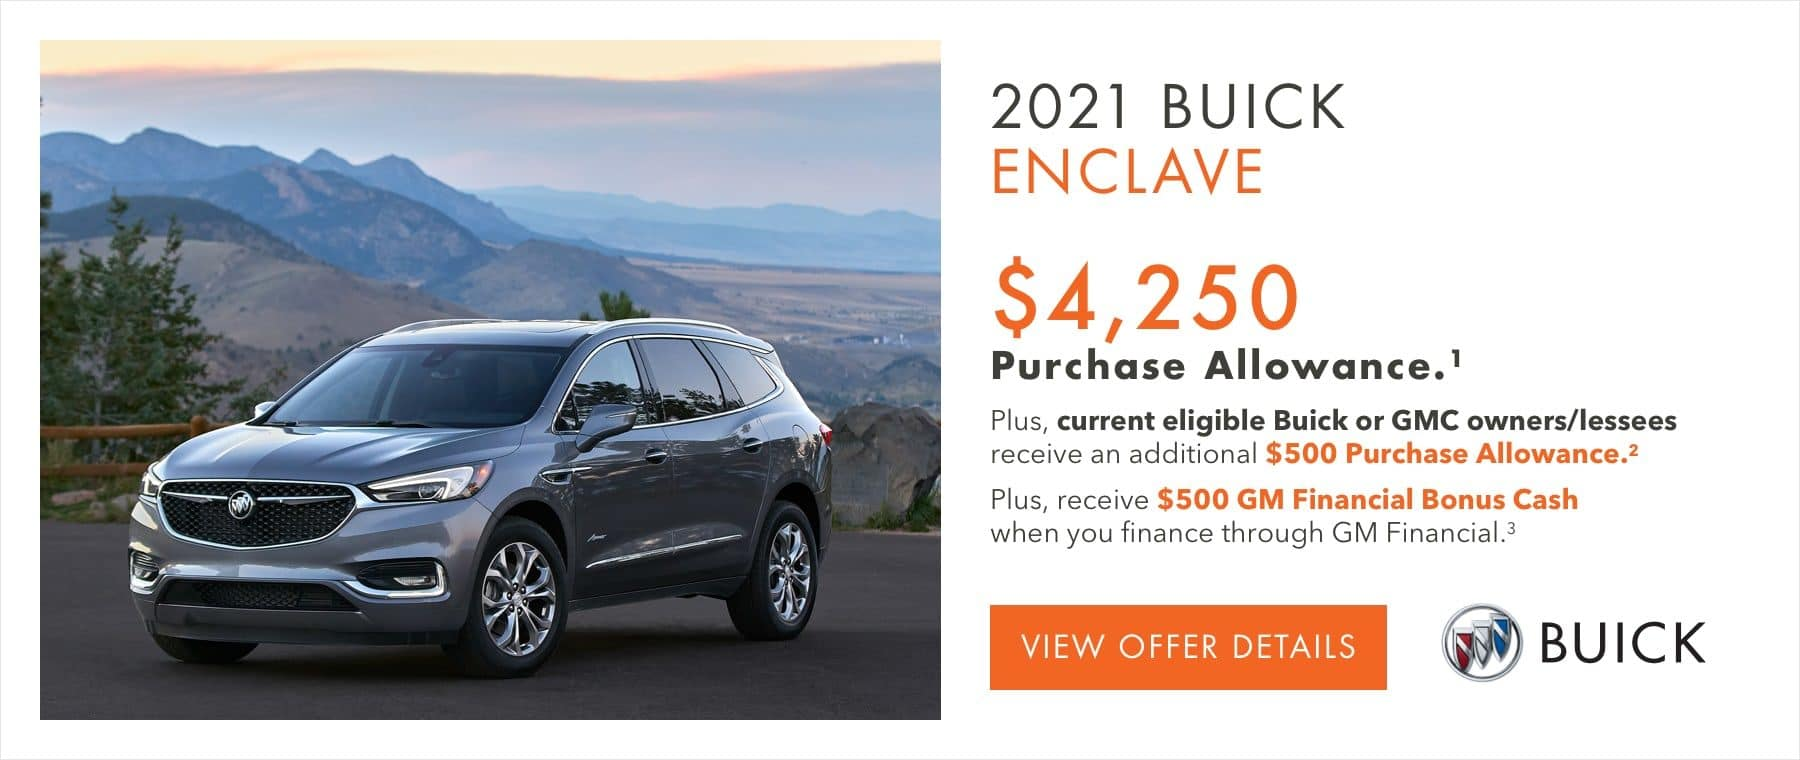 $4,250 Purchase Allowance.1 Plus, current eligible Buick or GMC owners/lessees receive an additional $500 Purchase Allowance.2 Plus, receive $500 GM Financial Bonus Cash when you finance through GM Financial.3